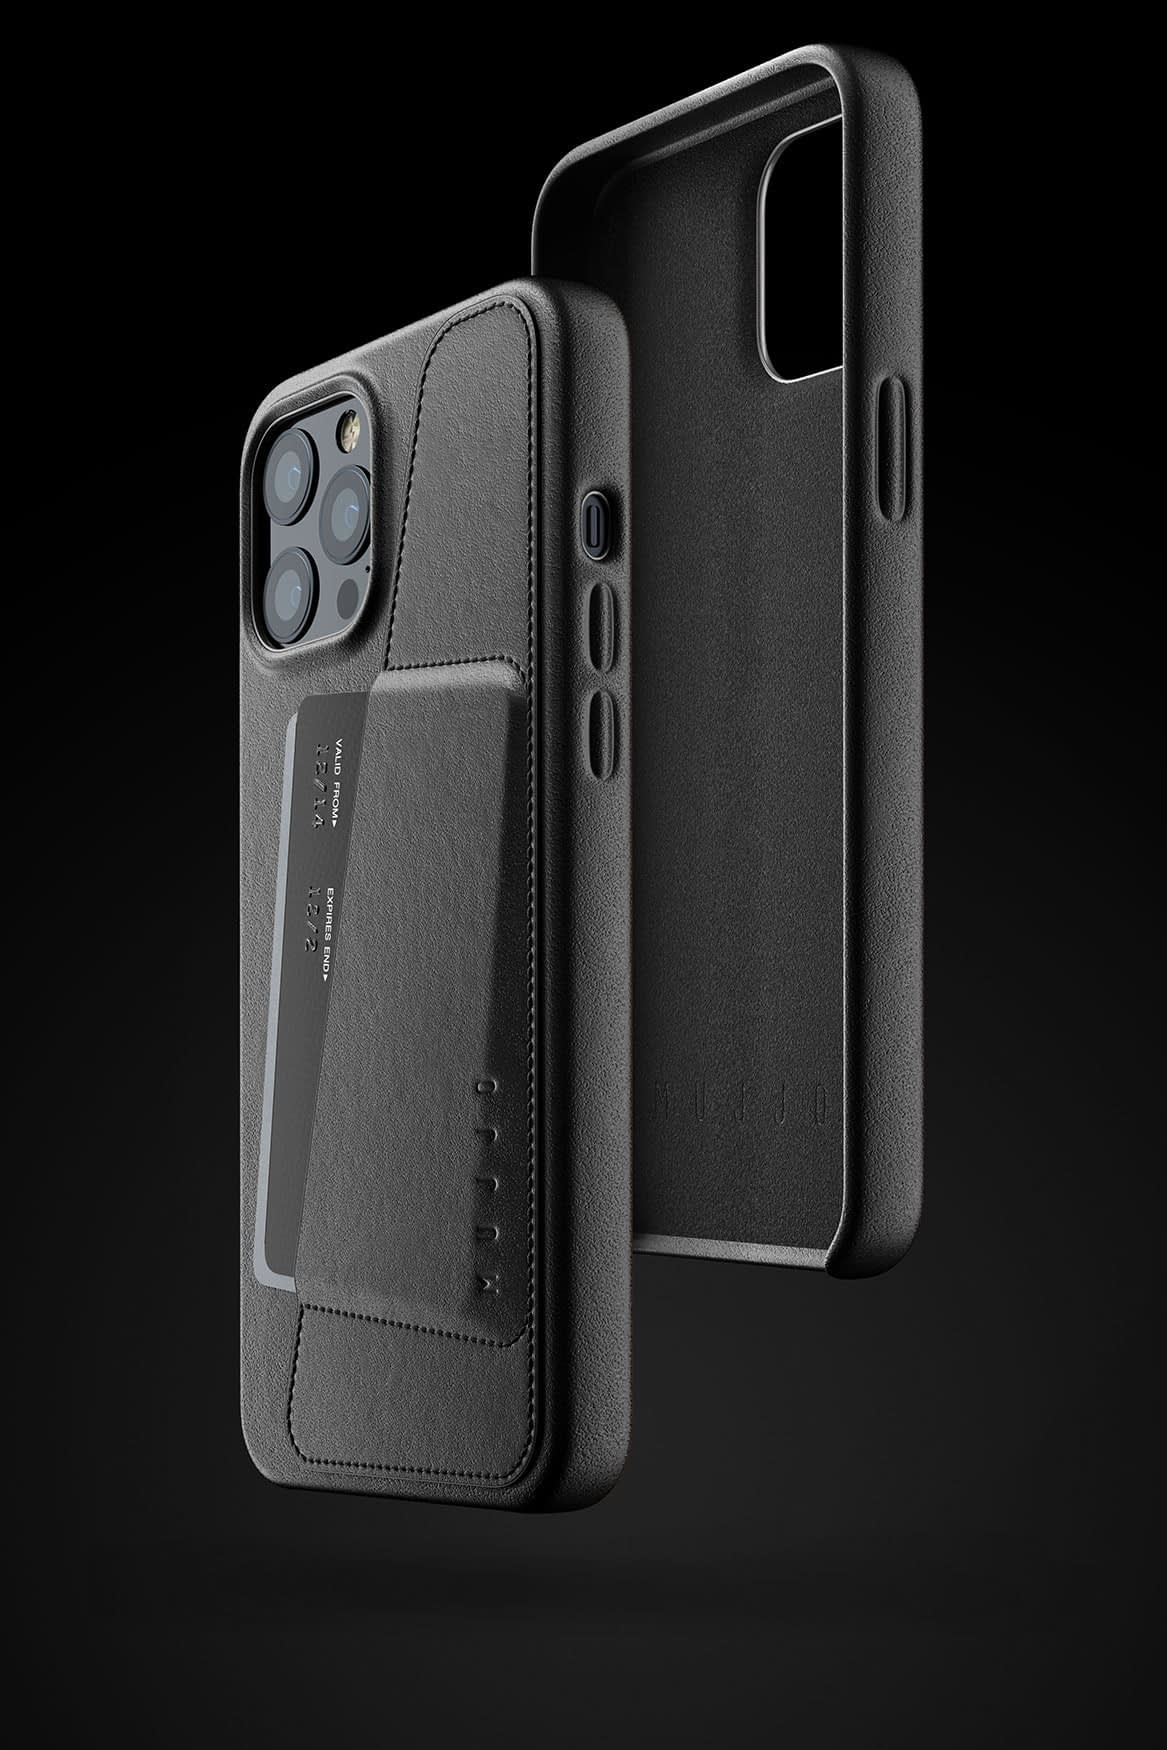 Full Leather Wallet Case for iPhone 12 Pro Max Black 03